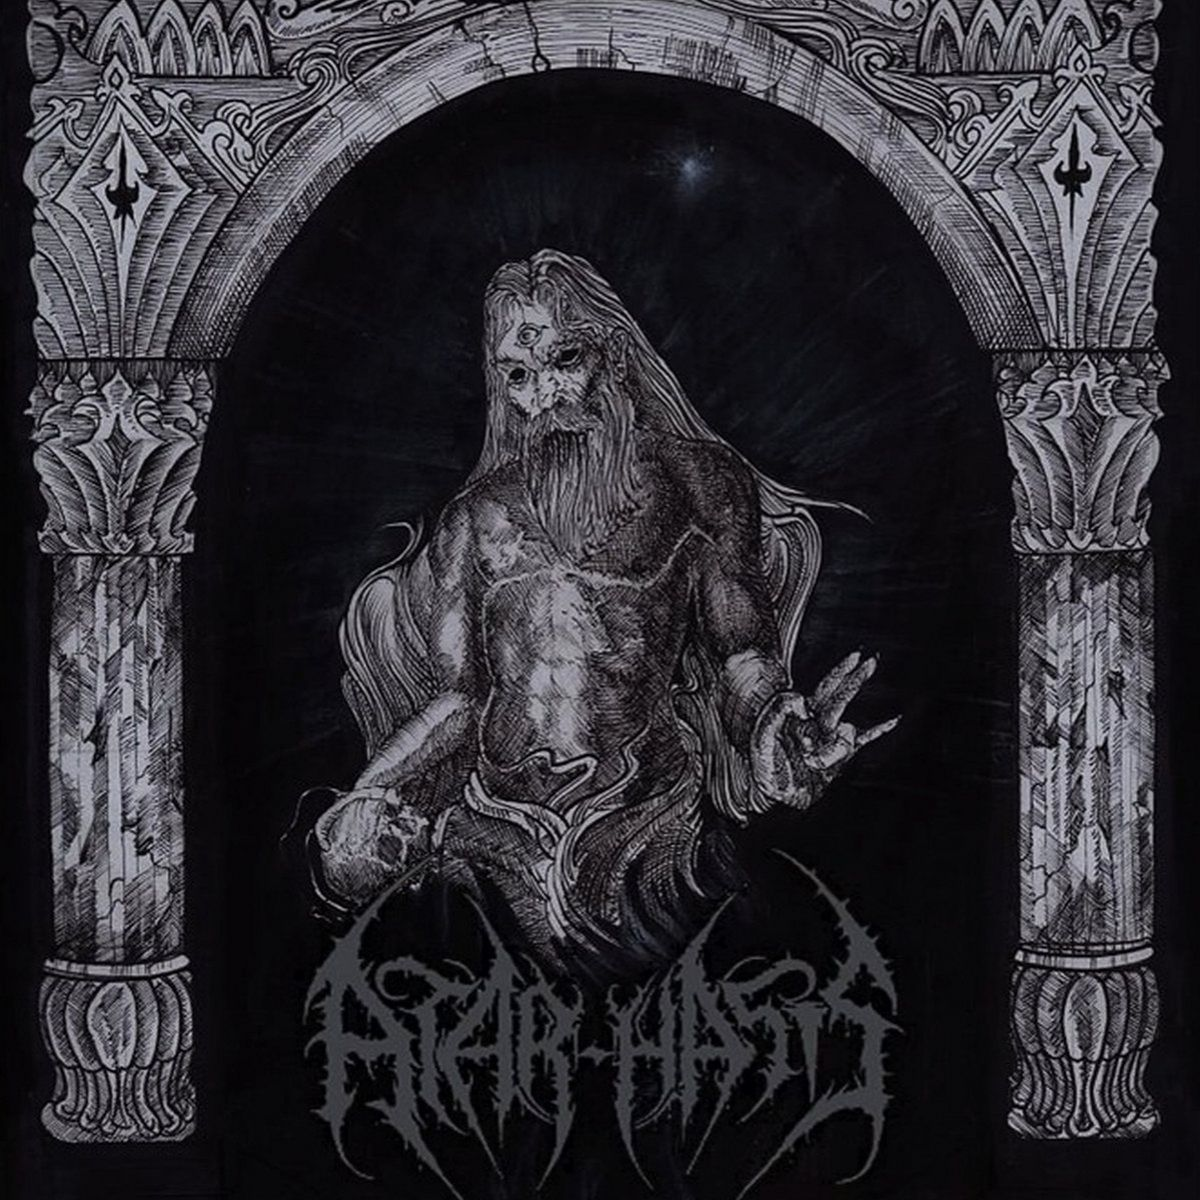 Review for Atar-Hasis - Incorporeal Transcendence